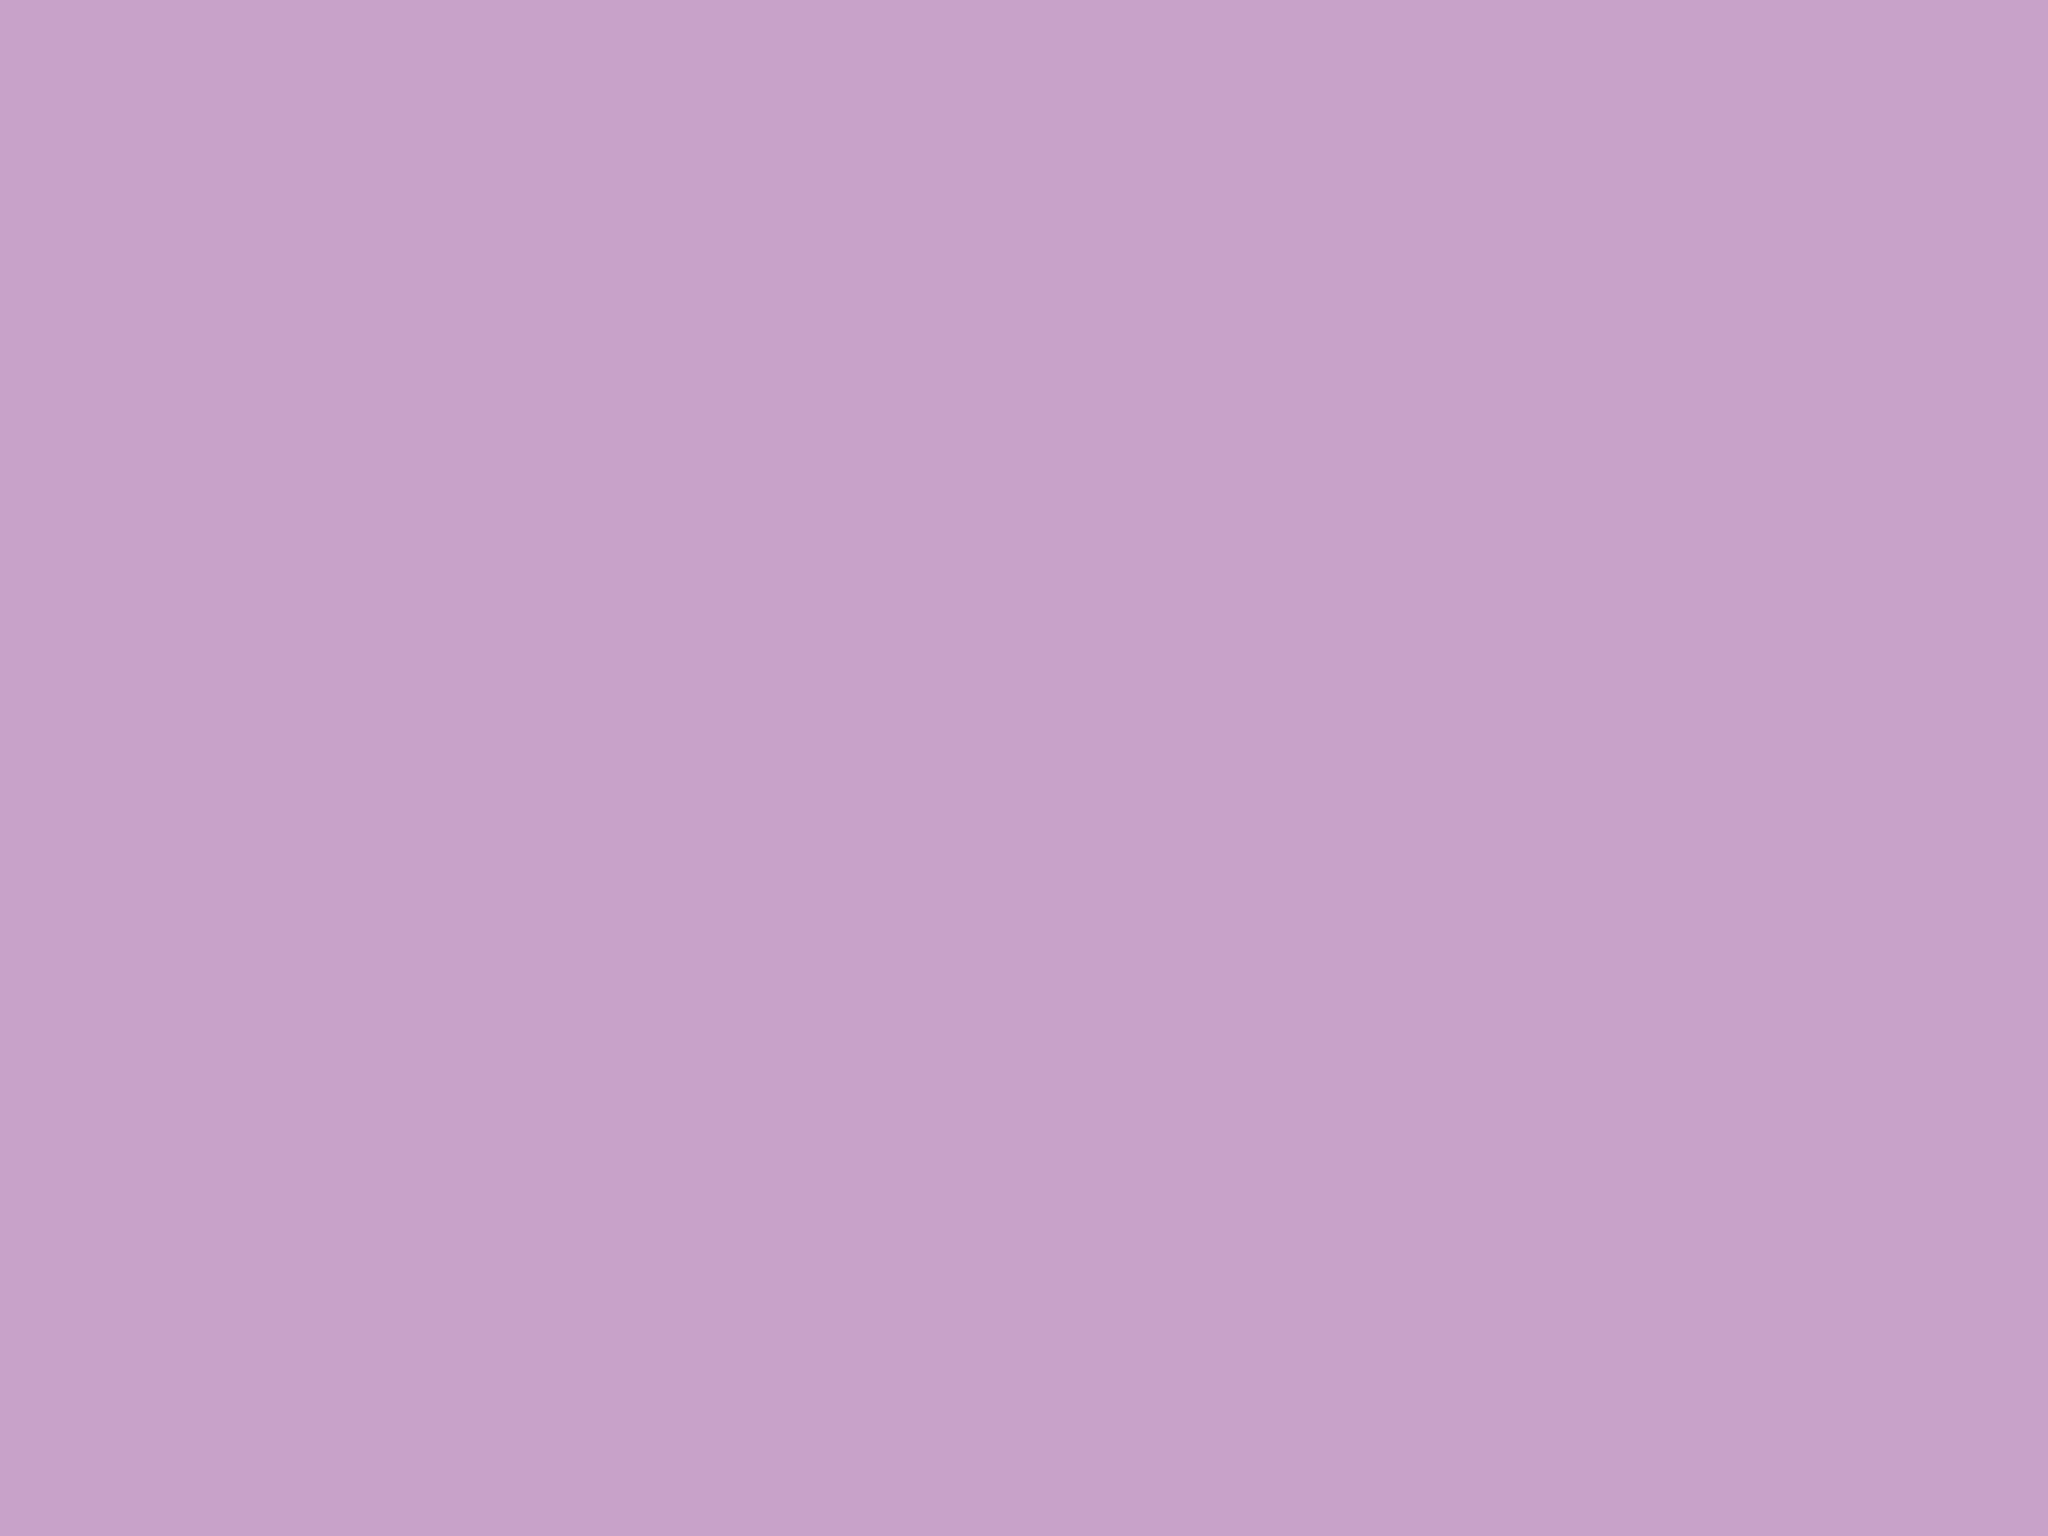 2048x1536 Lilac Solid Color Background